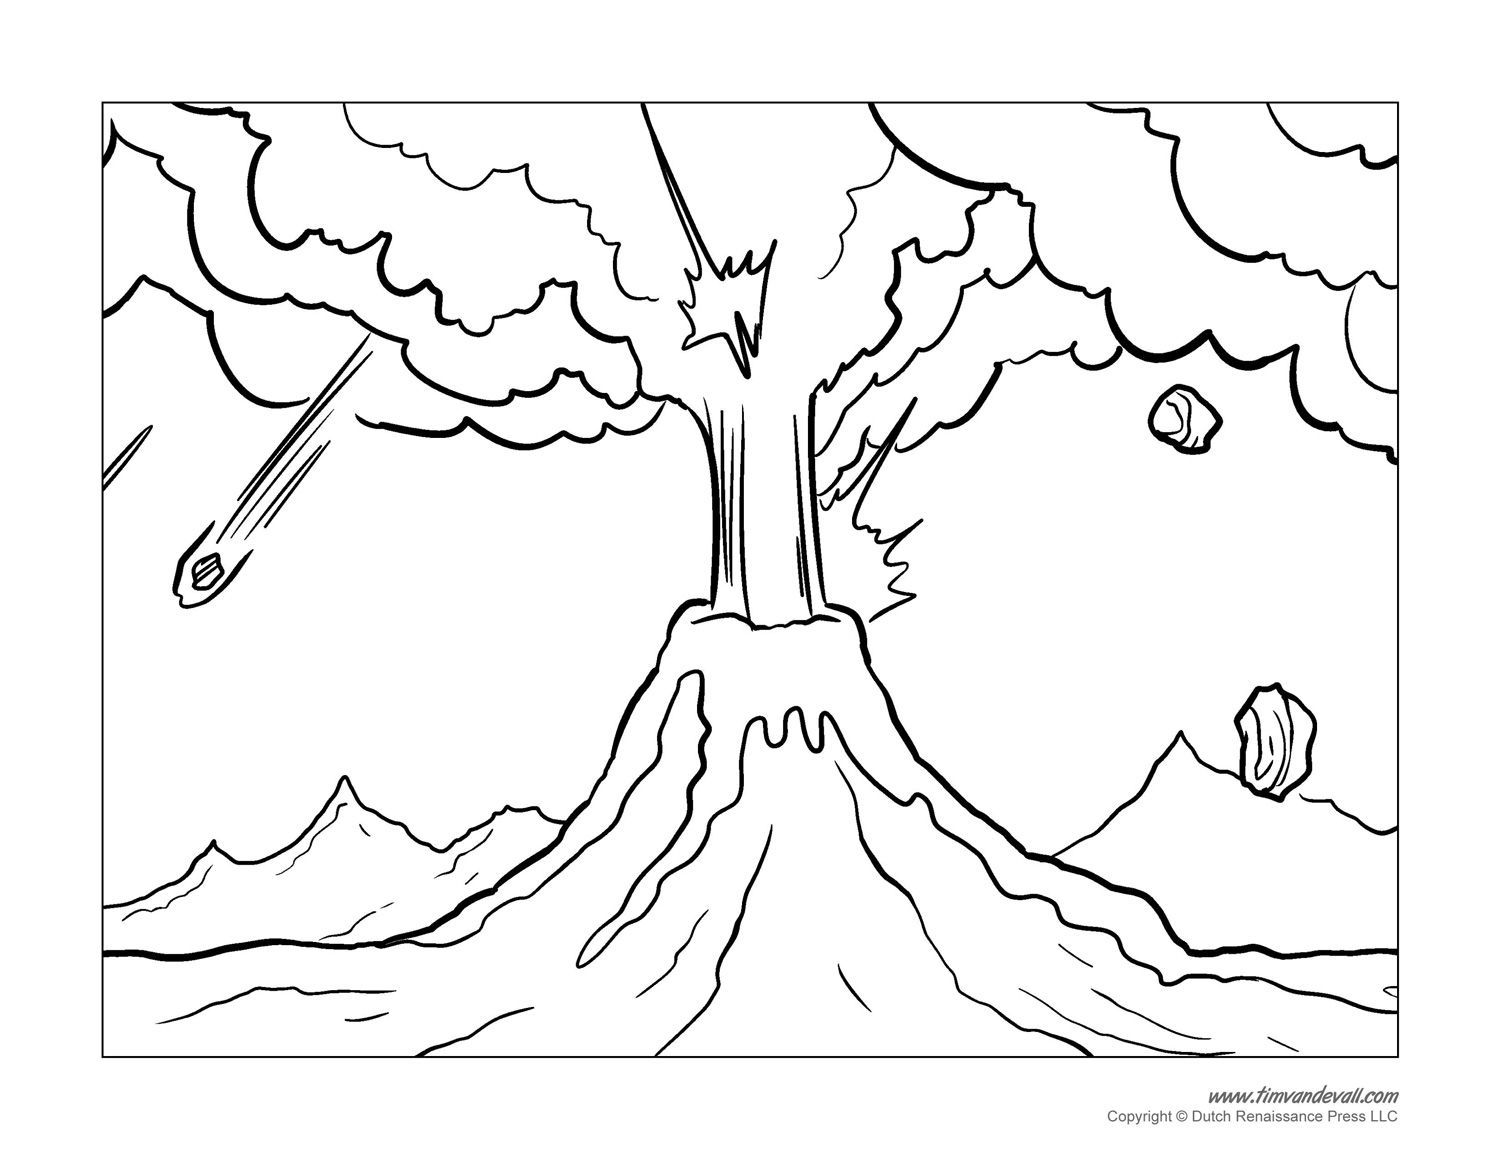 Volcano Coloring Pages Coloring Pages Volcano Drawing Love Coloring Pages